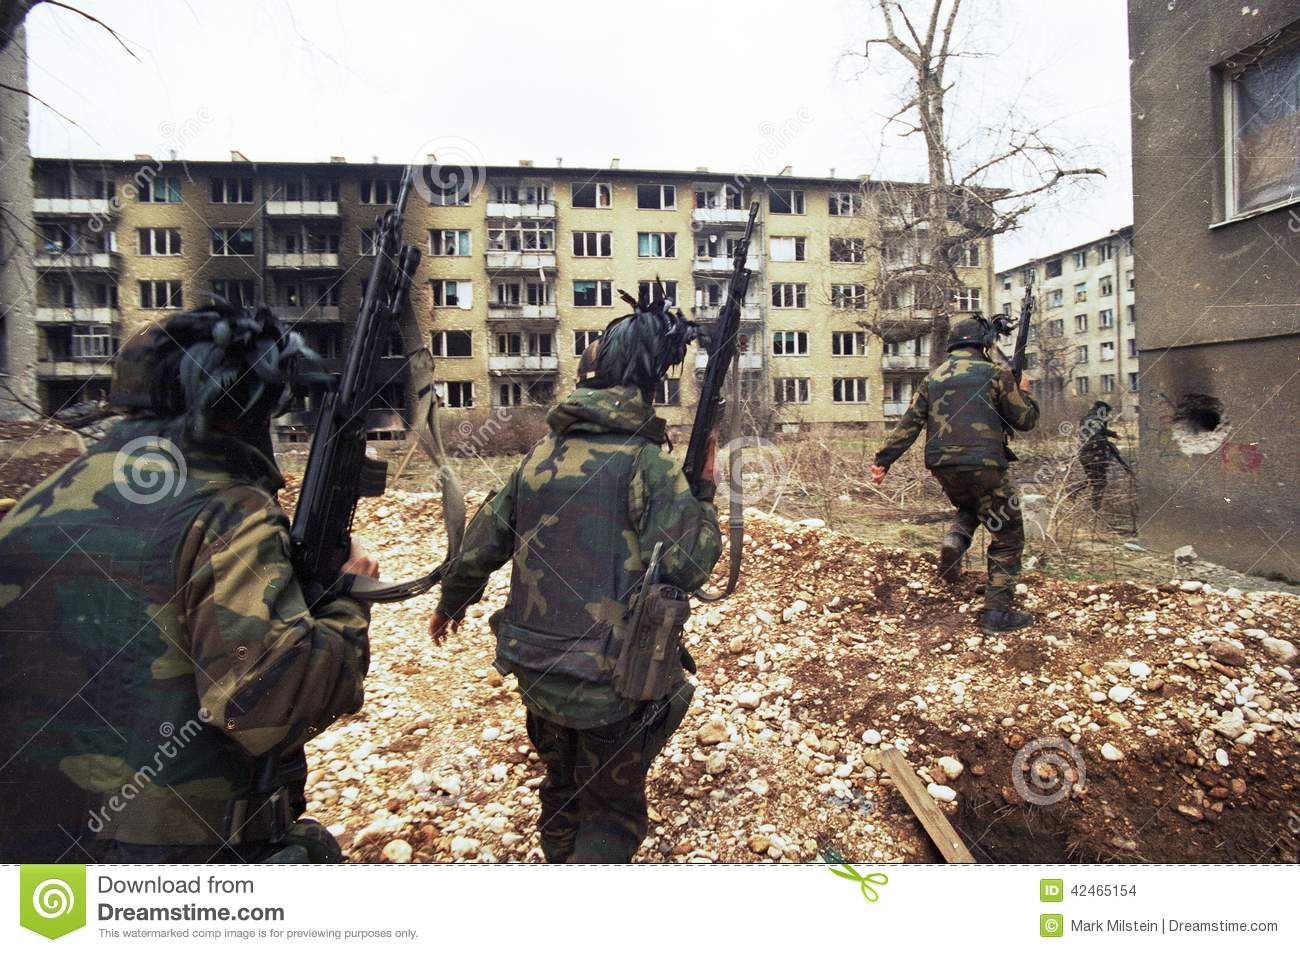 bosnia civil war essay This paper is a collaborative effort to explain the history of the war in the former   as johnson points out in his essay the pinstripe approach to genocide   of bosnia: it stimulated the development of a genuine bosnian civil war, and in so .